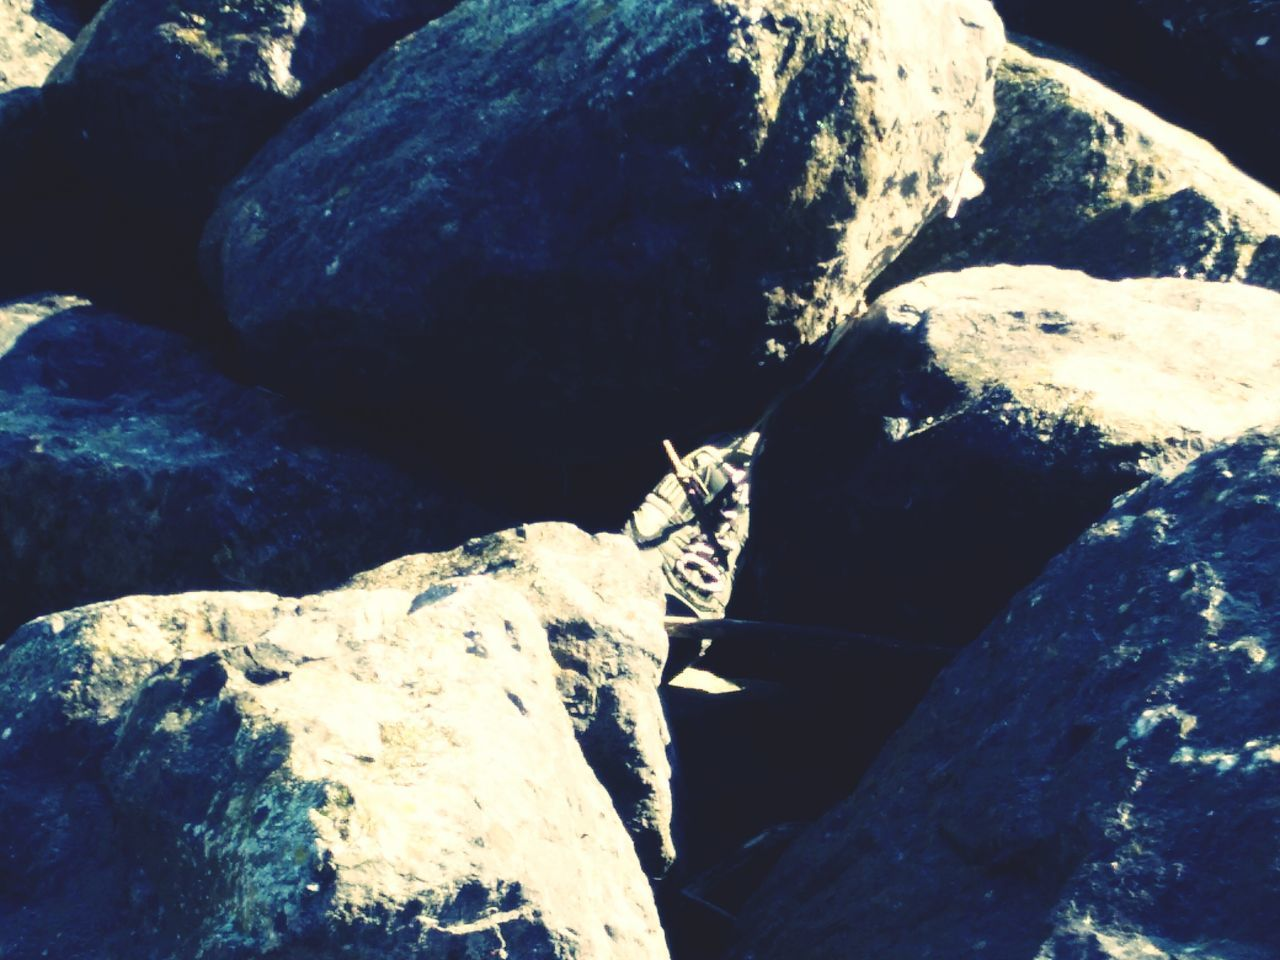 rock - object, rock, nature, outdoors, no people, day, water, close-up, beauty in nature